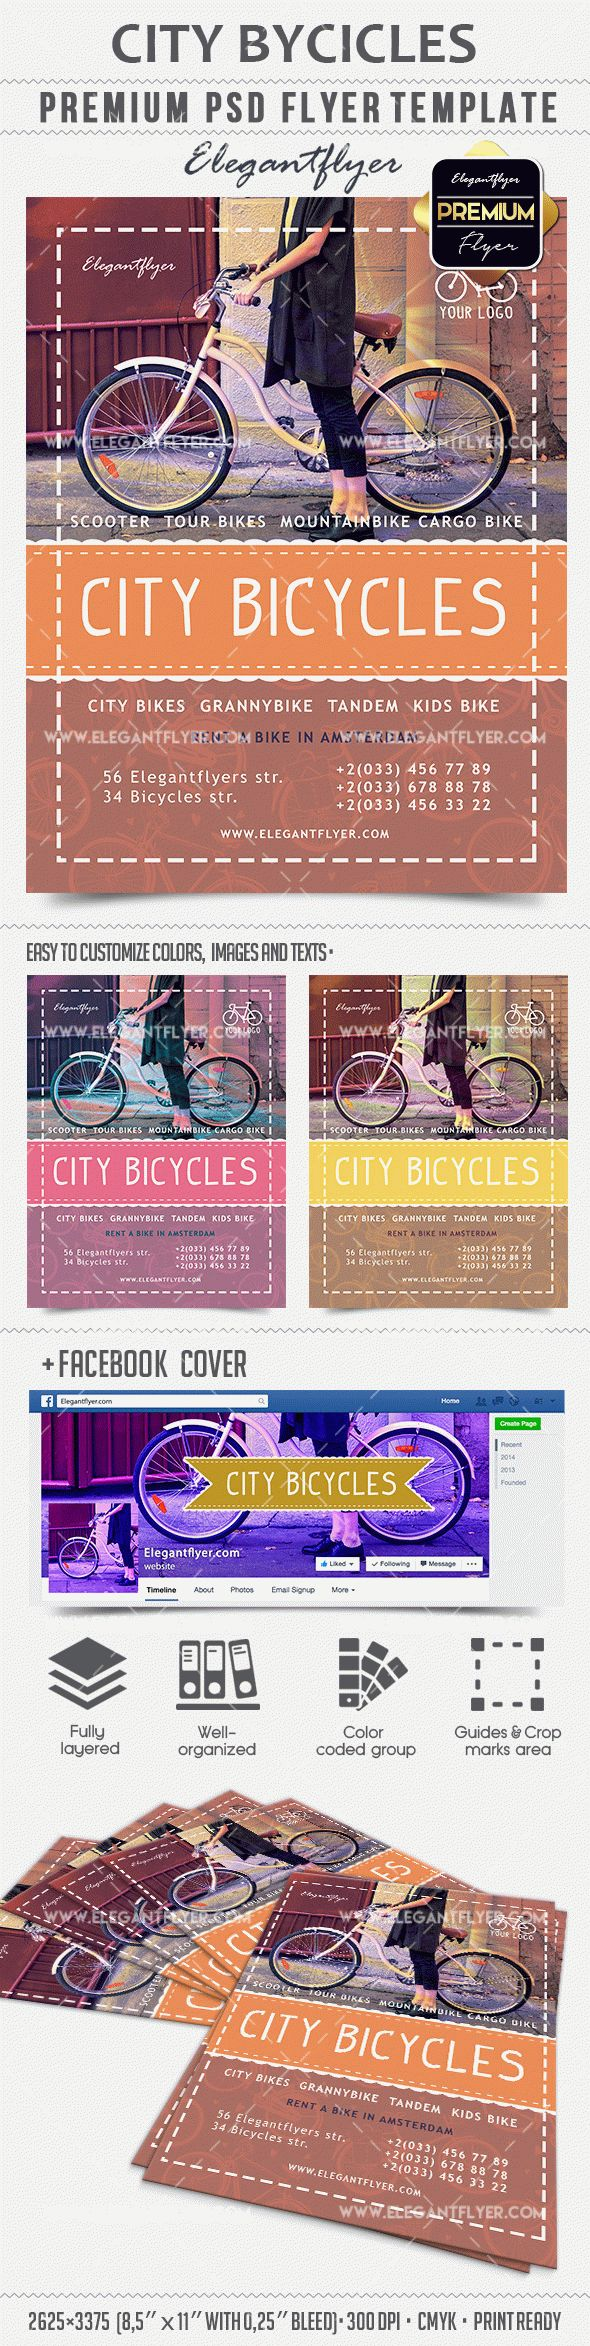 City Bicycles – Premium PSD Template + Facebook cover